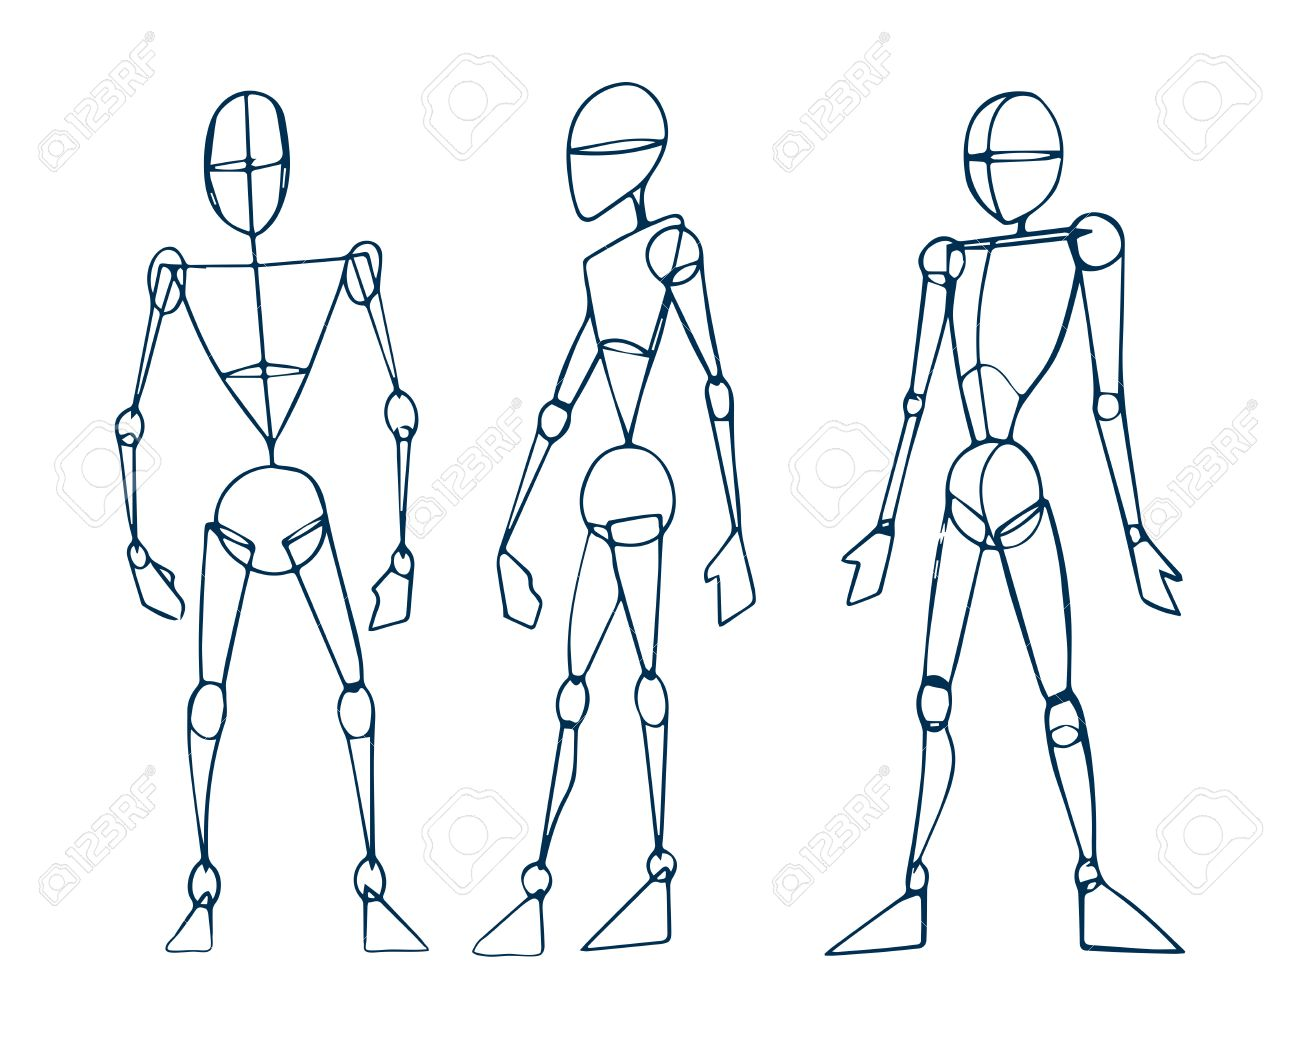 Hand Drawn Vector Illustration Or Drawing Of A Human Figure Sketch Royalty Free Cliparts Vectors And Stock Illustration Image 35628326